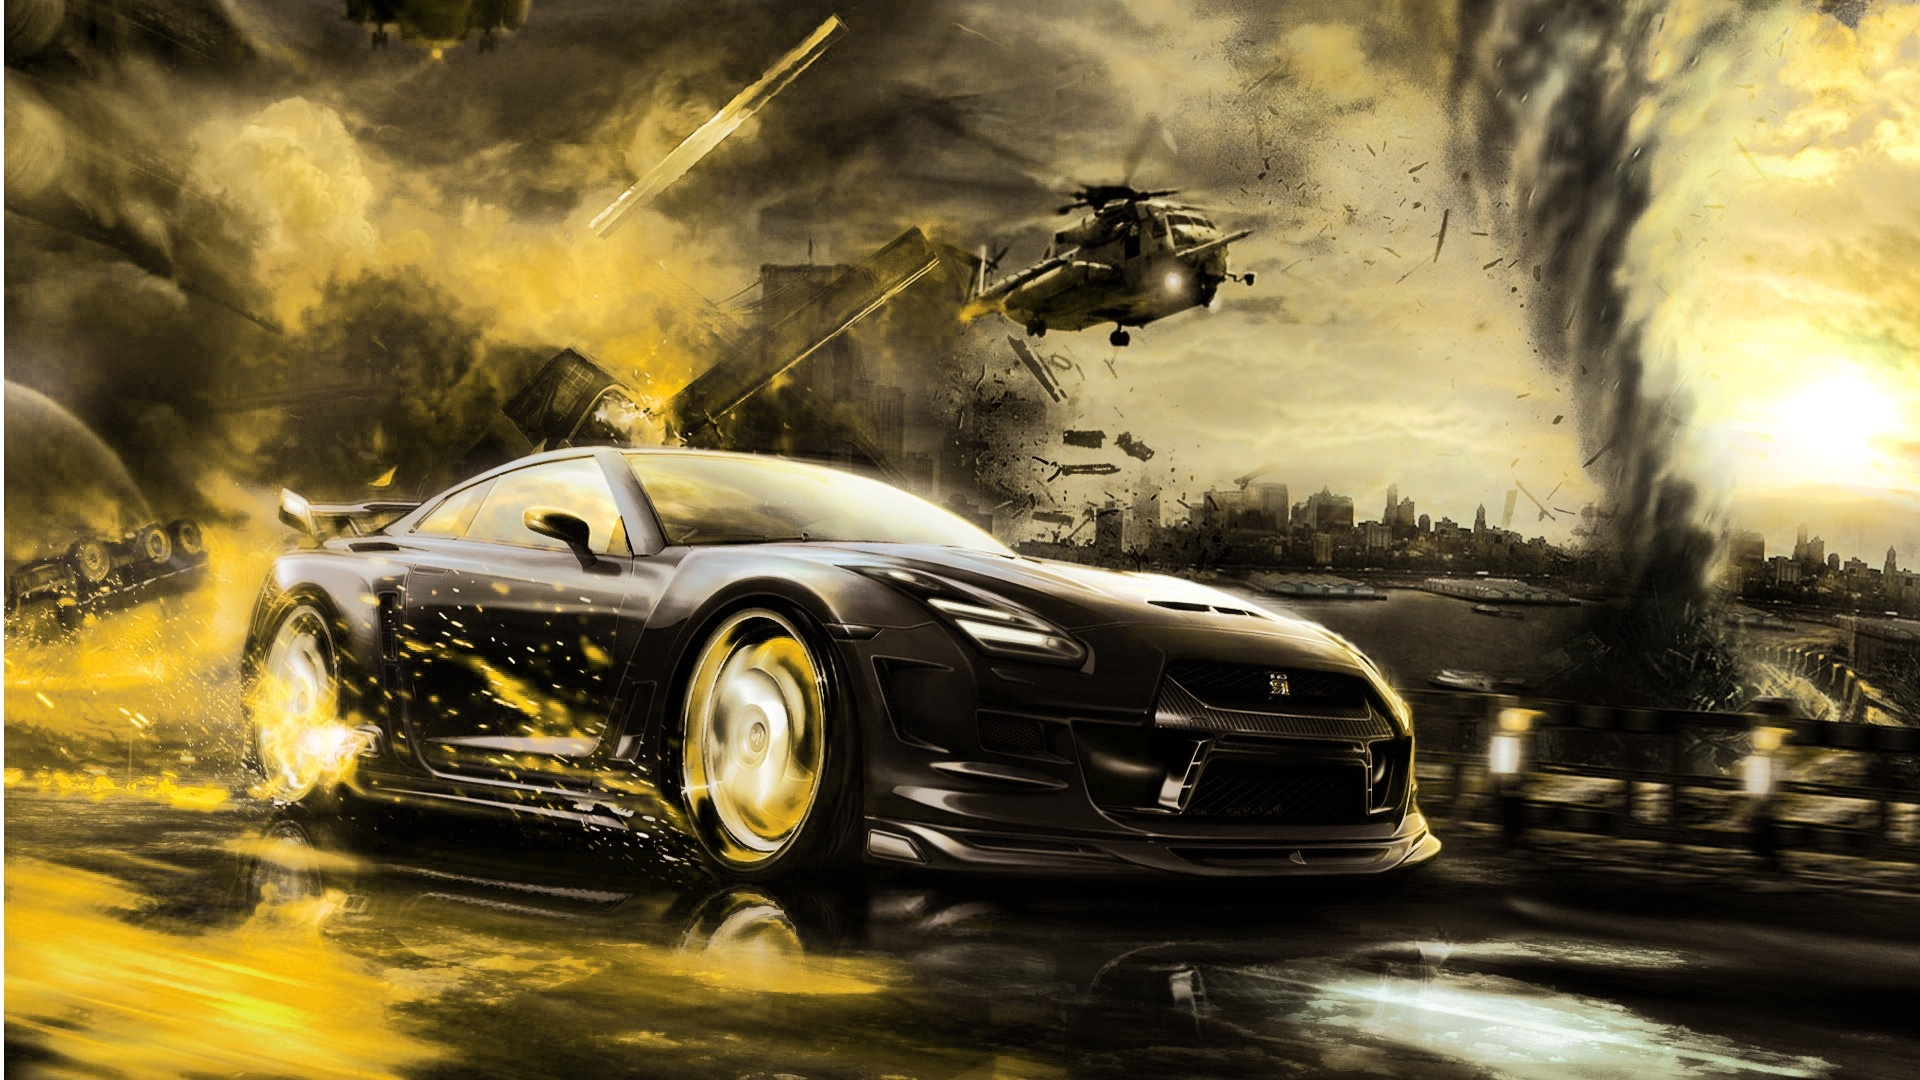 Cool Car Wallpapers HD 1080p 1920x1080